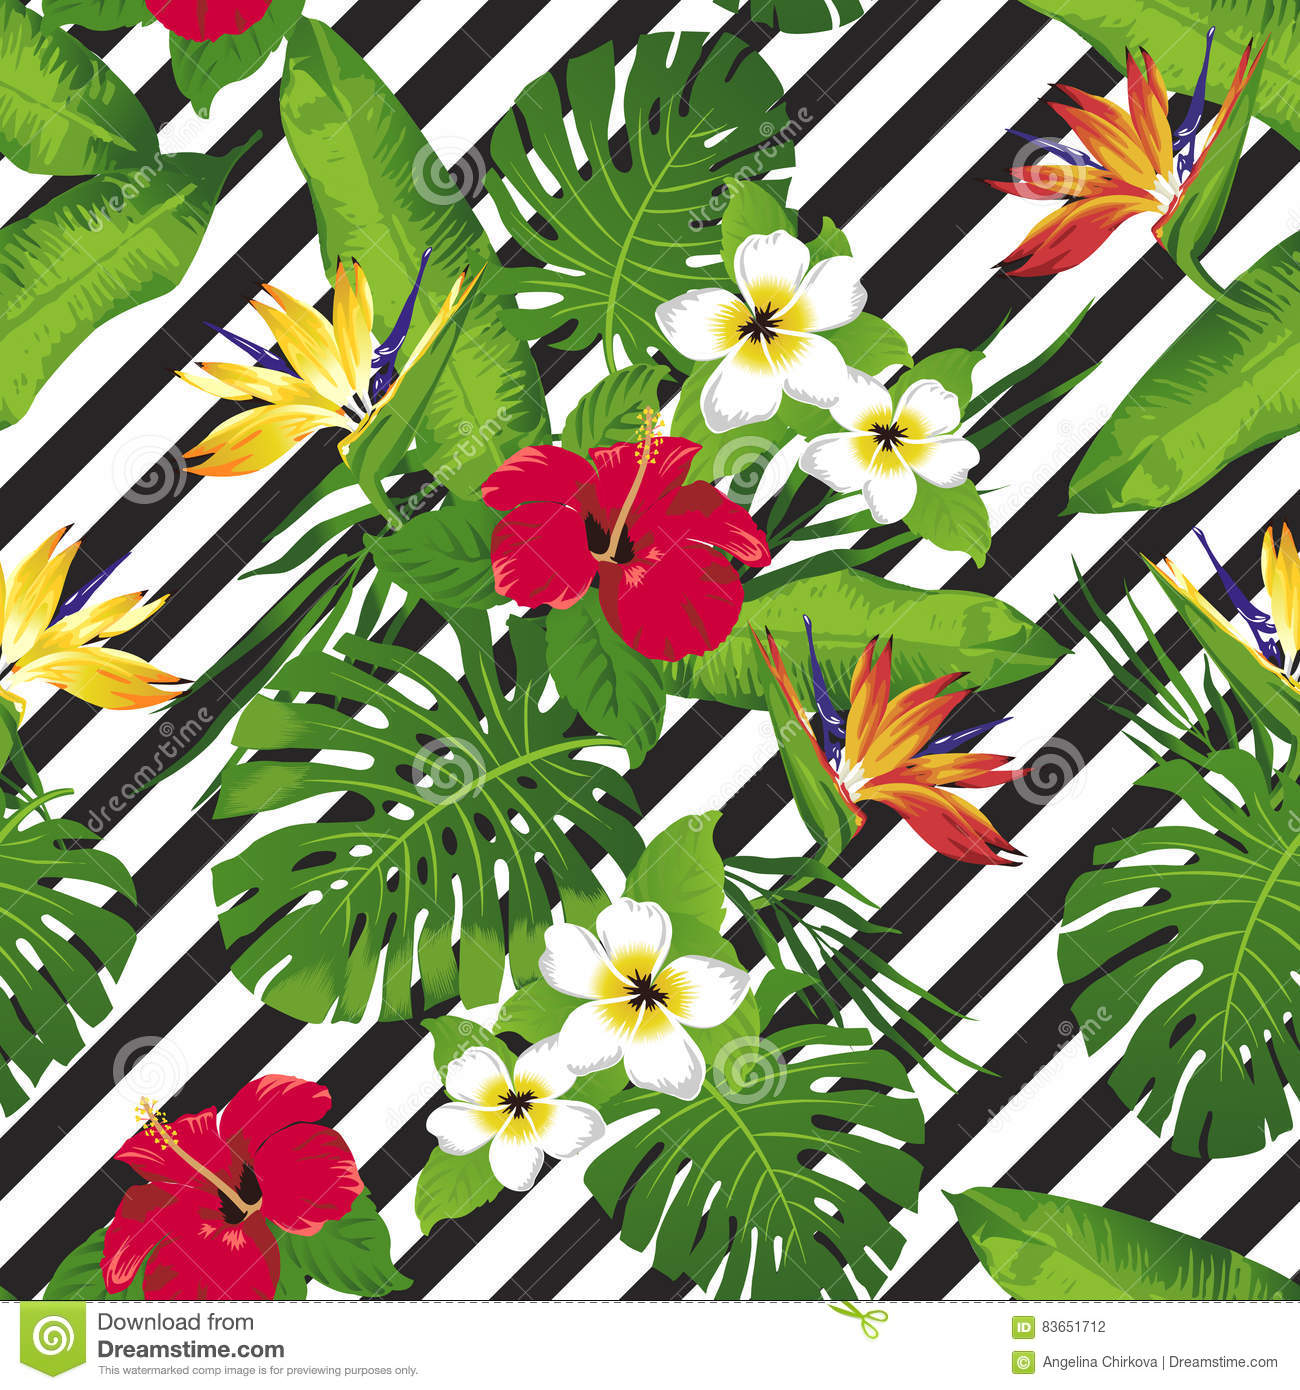 Tropical flowers and leaves on diagonal background.